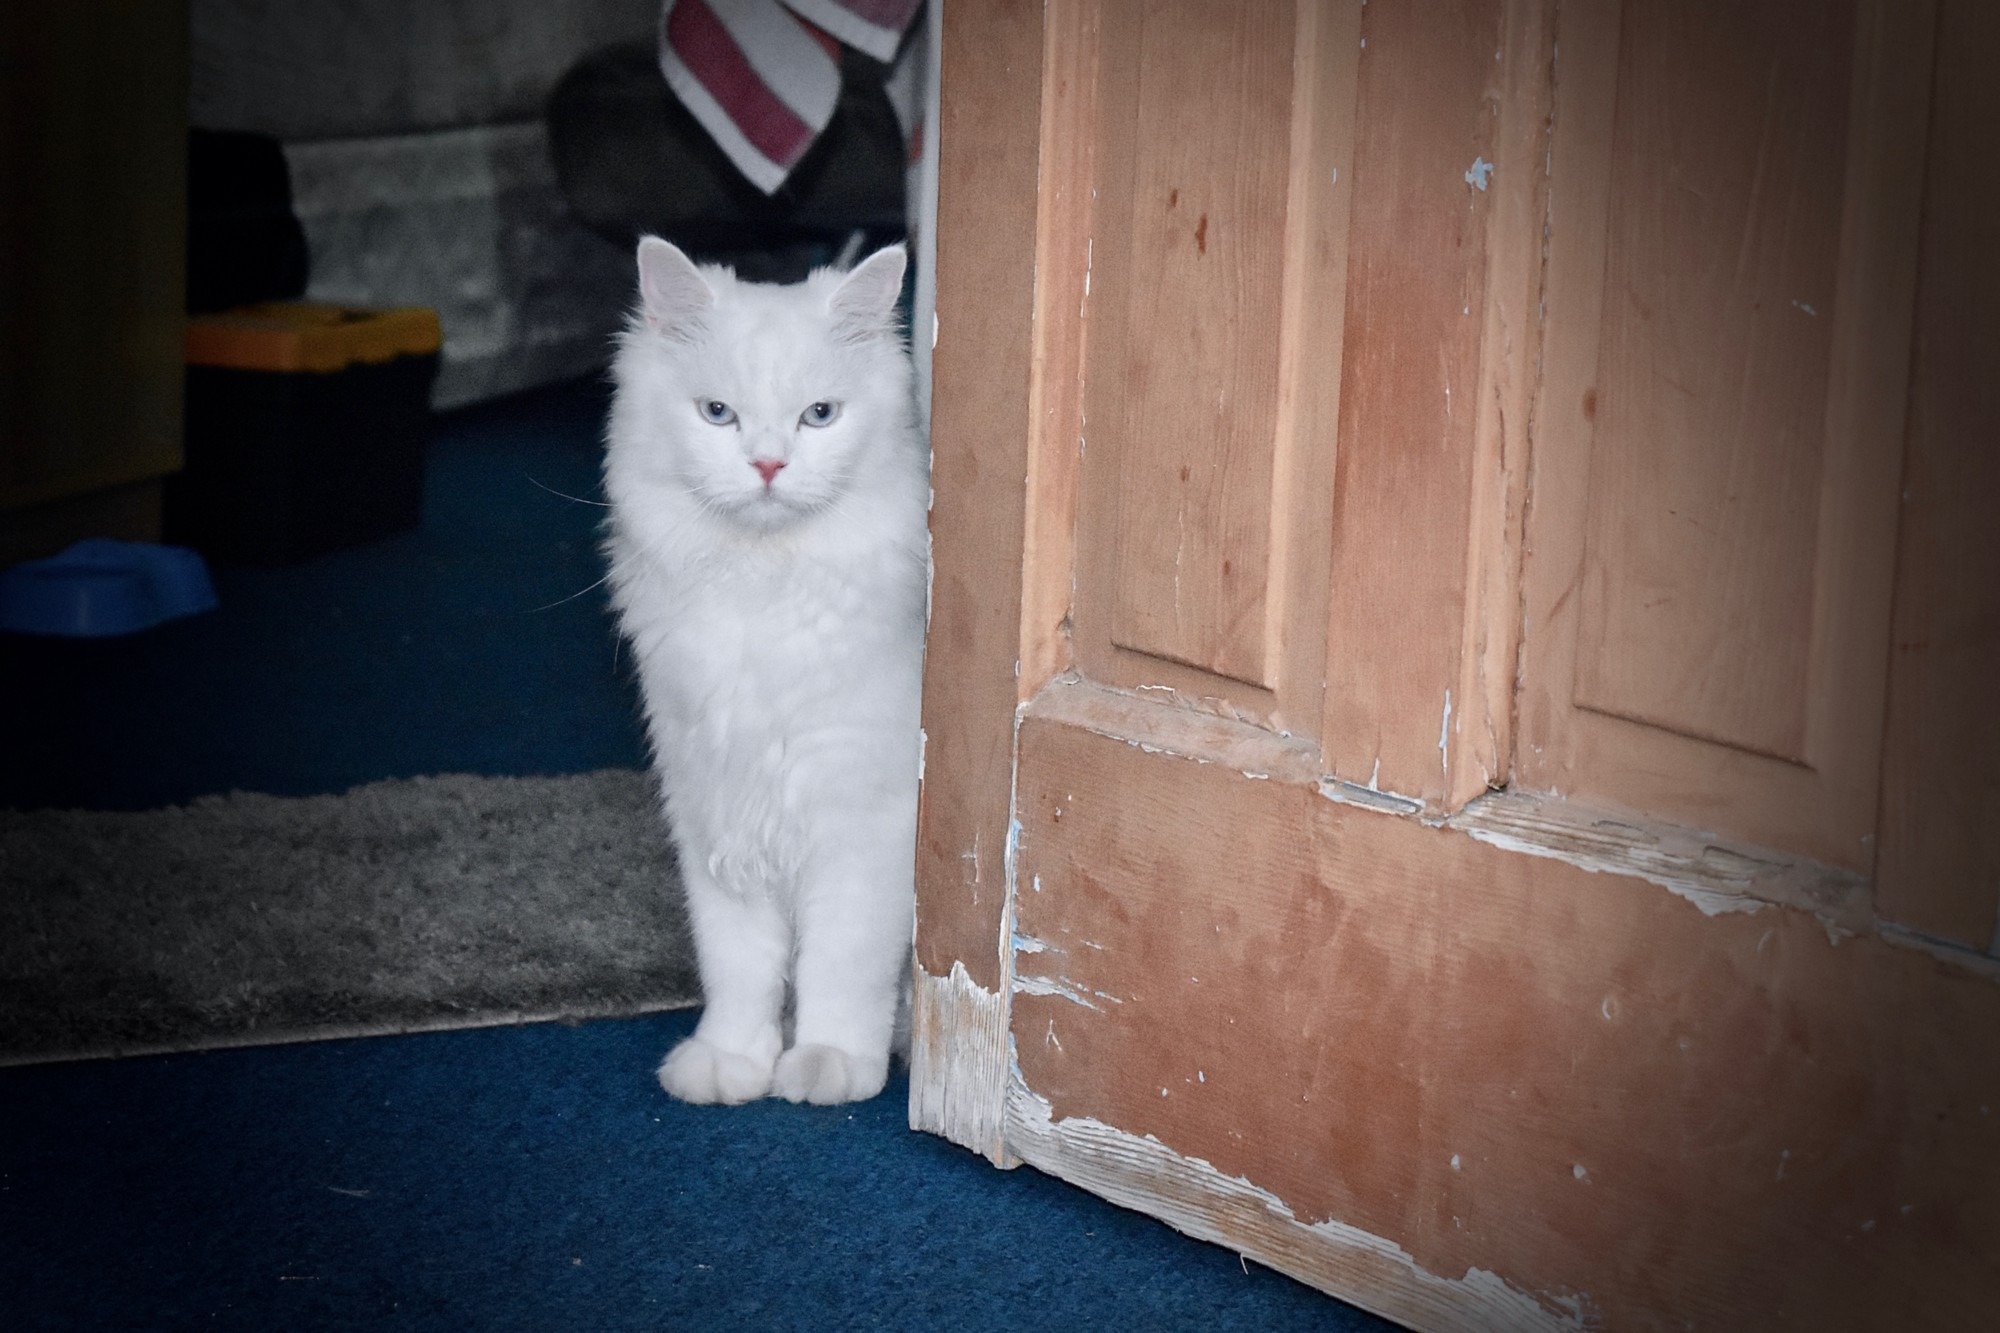 A white furry cat stands at the door waiting for his owner